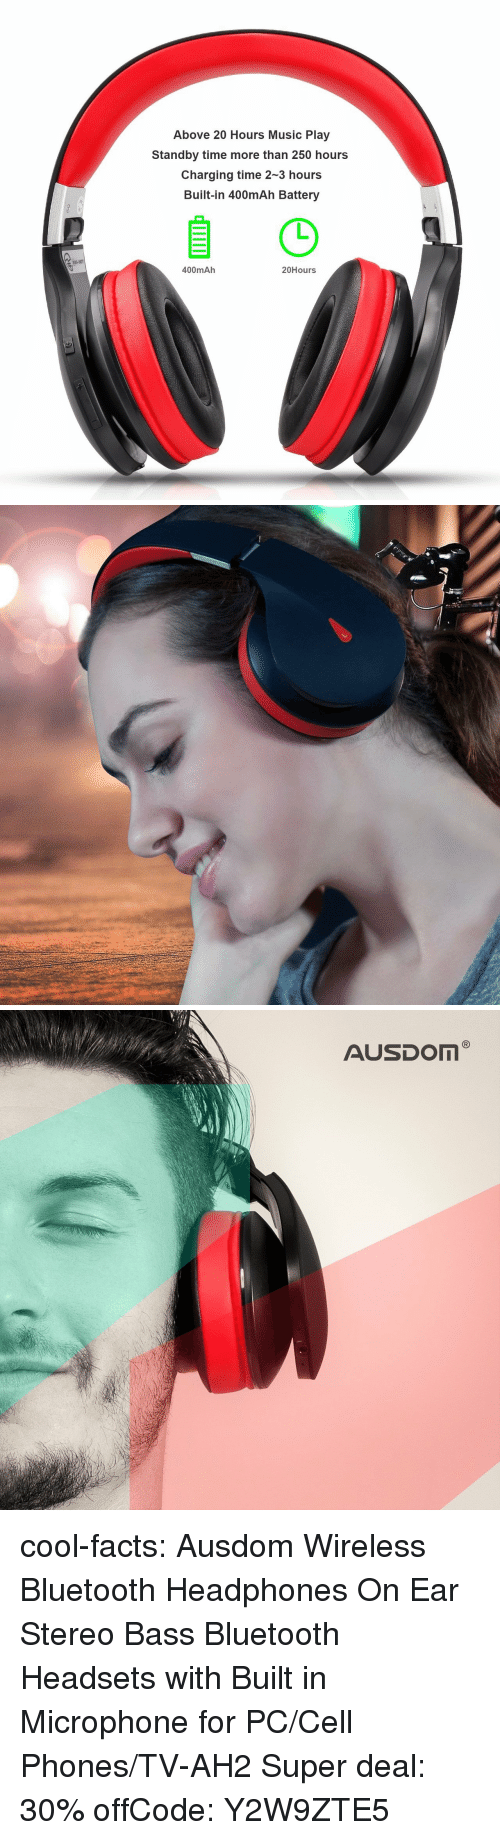 cell phones: Above 20 Hours Music Play  Standby time more than 250 hours  Charging time 2-3 hours  Built-in 400mAh Battery  400mAh  20Hours cool-facts:   Ausdom Wireless Bluetooth Headphones   On Ear Stereo Bass Bluetooth Headsets with Built in Microphone for PC/Cell Phones/TV-AH2   Super deal: 30% offCode: Y2W9ZTE5